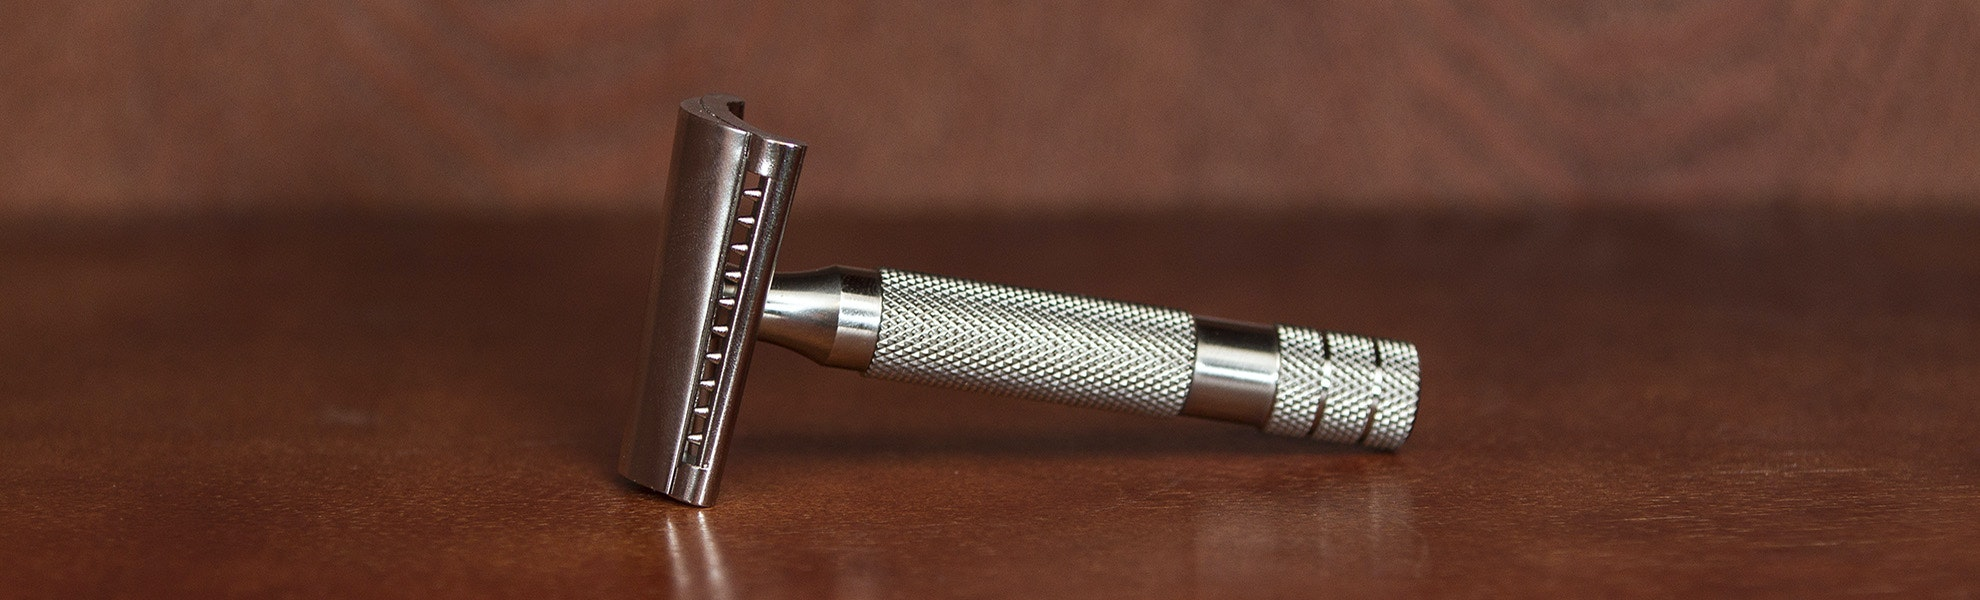 iKon Slant Stainless Steel Double Edge Razor